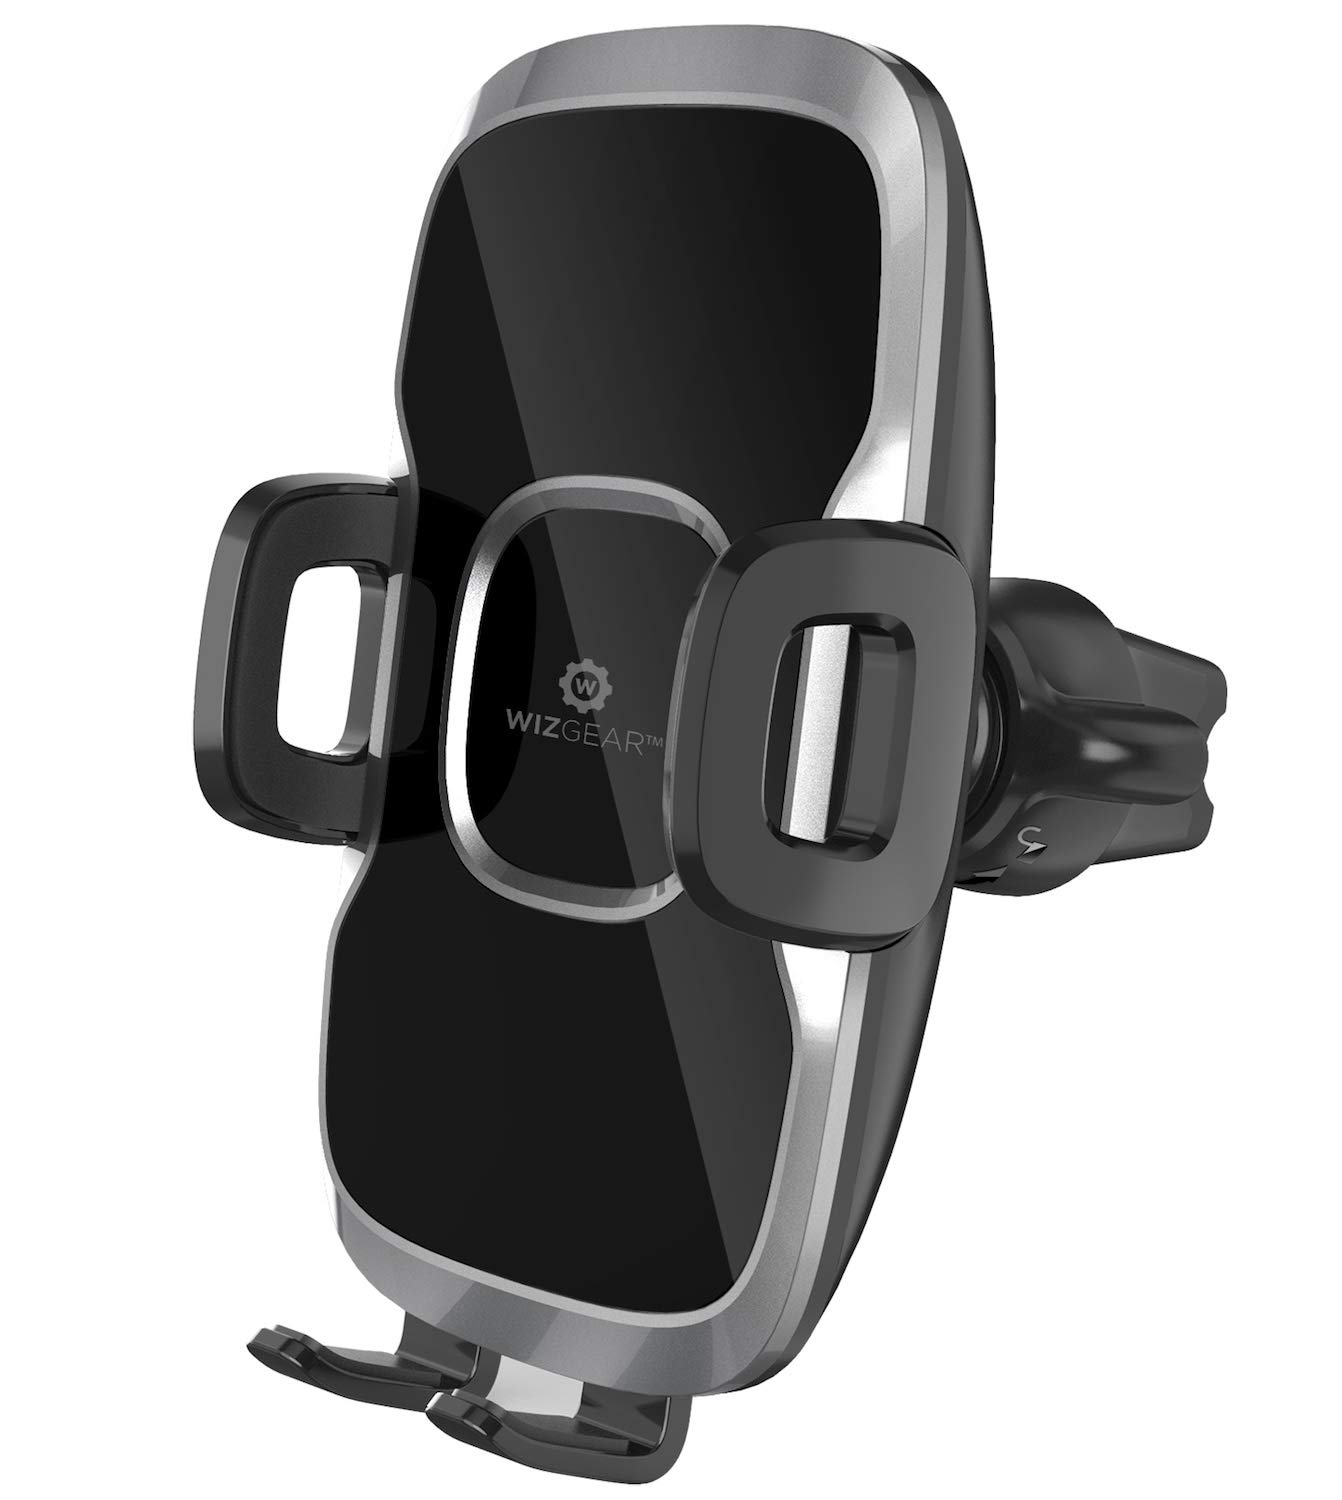 Phone Holder for Car, WizGear Air Vent Swift-Grip Phone Holder for Car, Cell Phone Car Mount Air Vent Holder for Any Smartphone with Twist Lock Base by WizGear